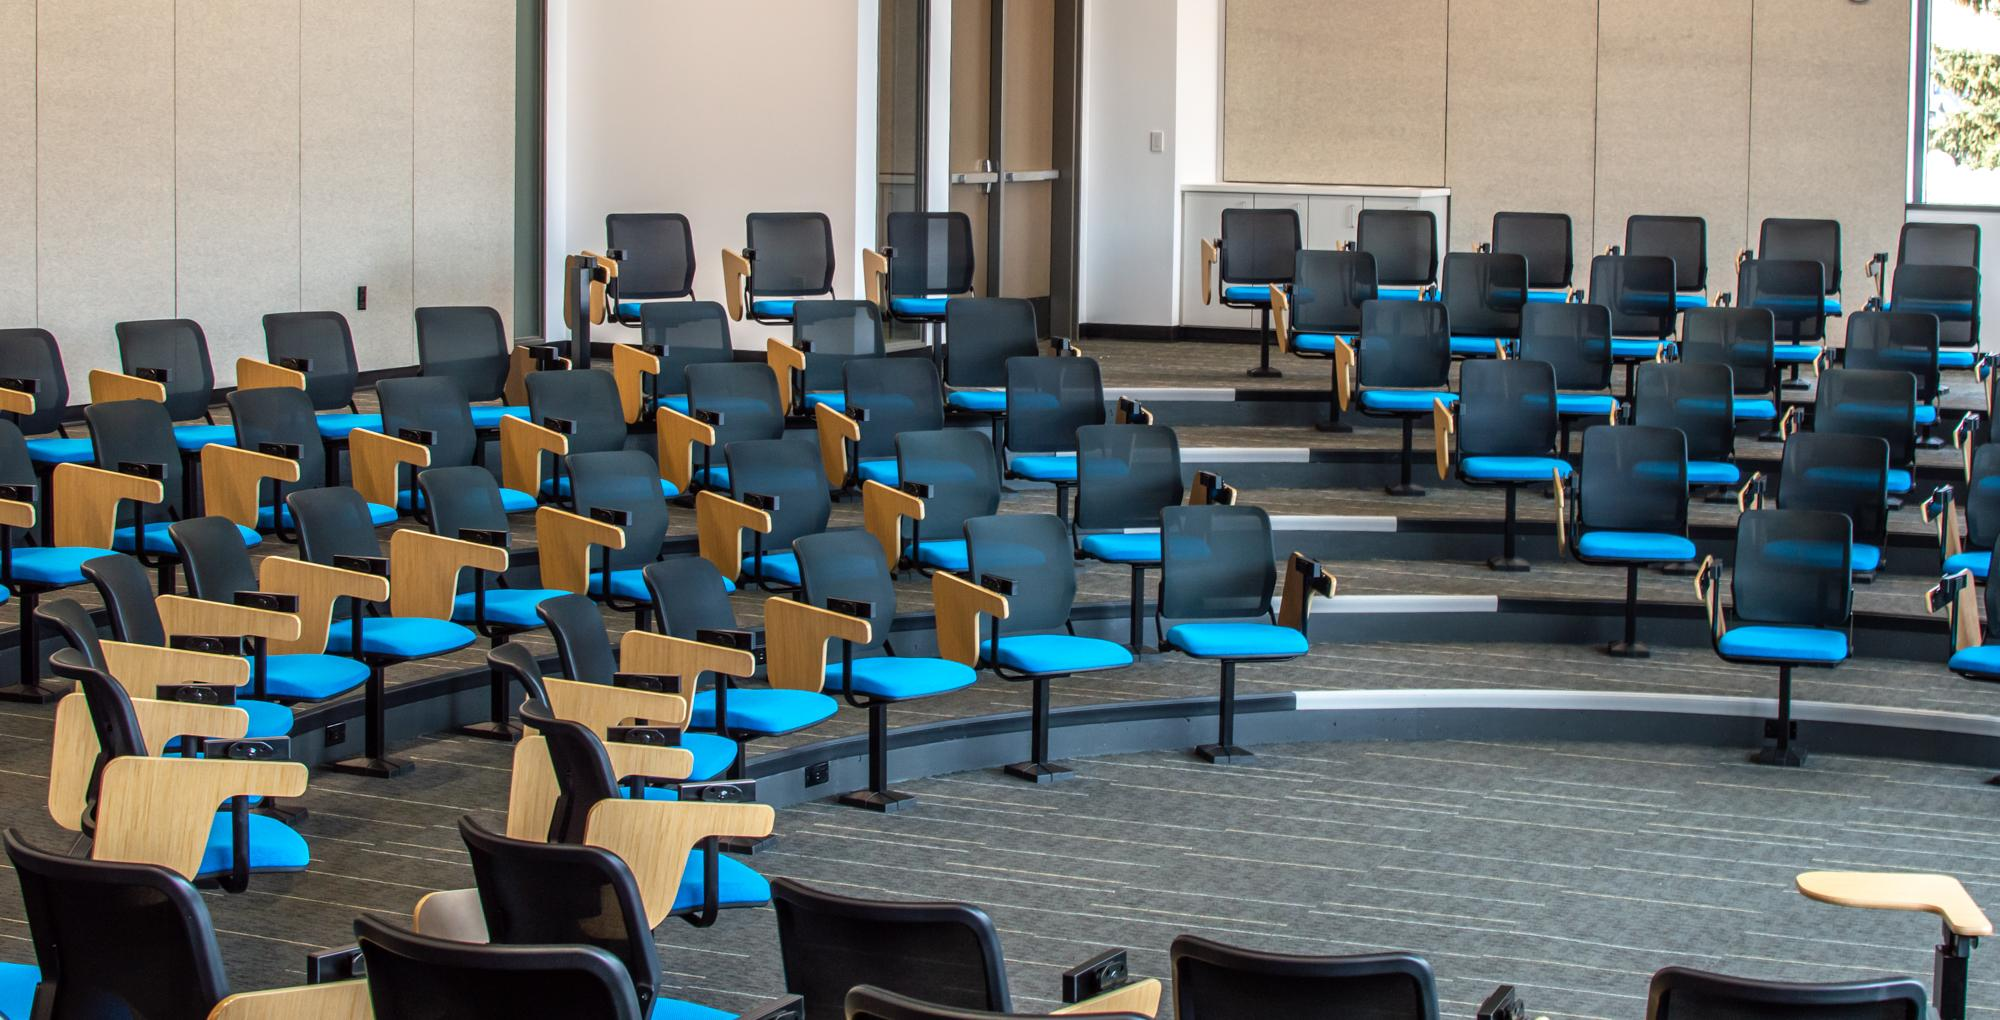 Asbjornson Hall has a round theater-style classroom